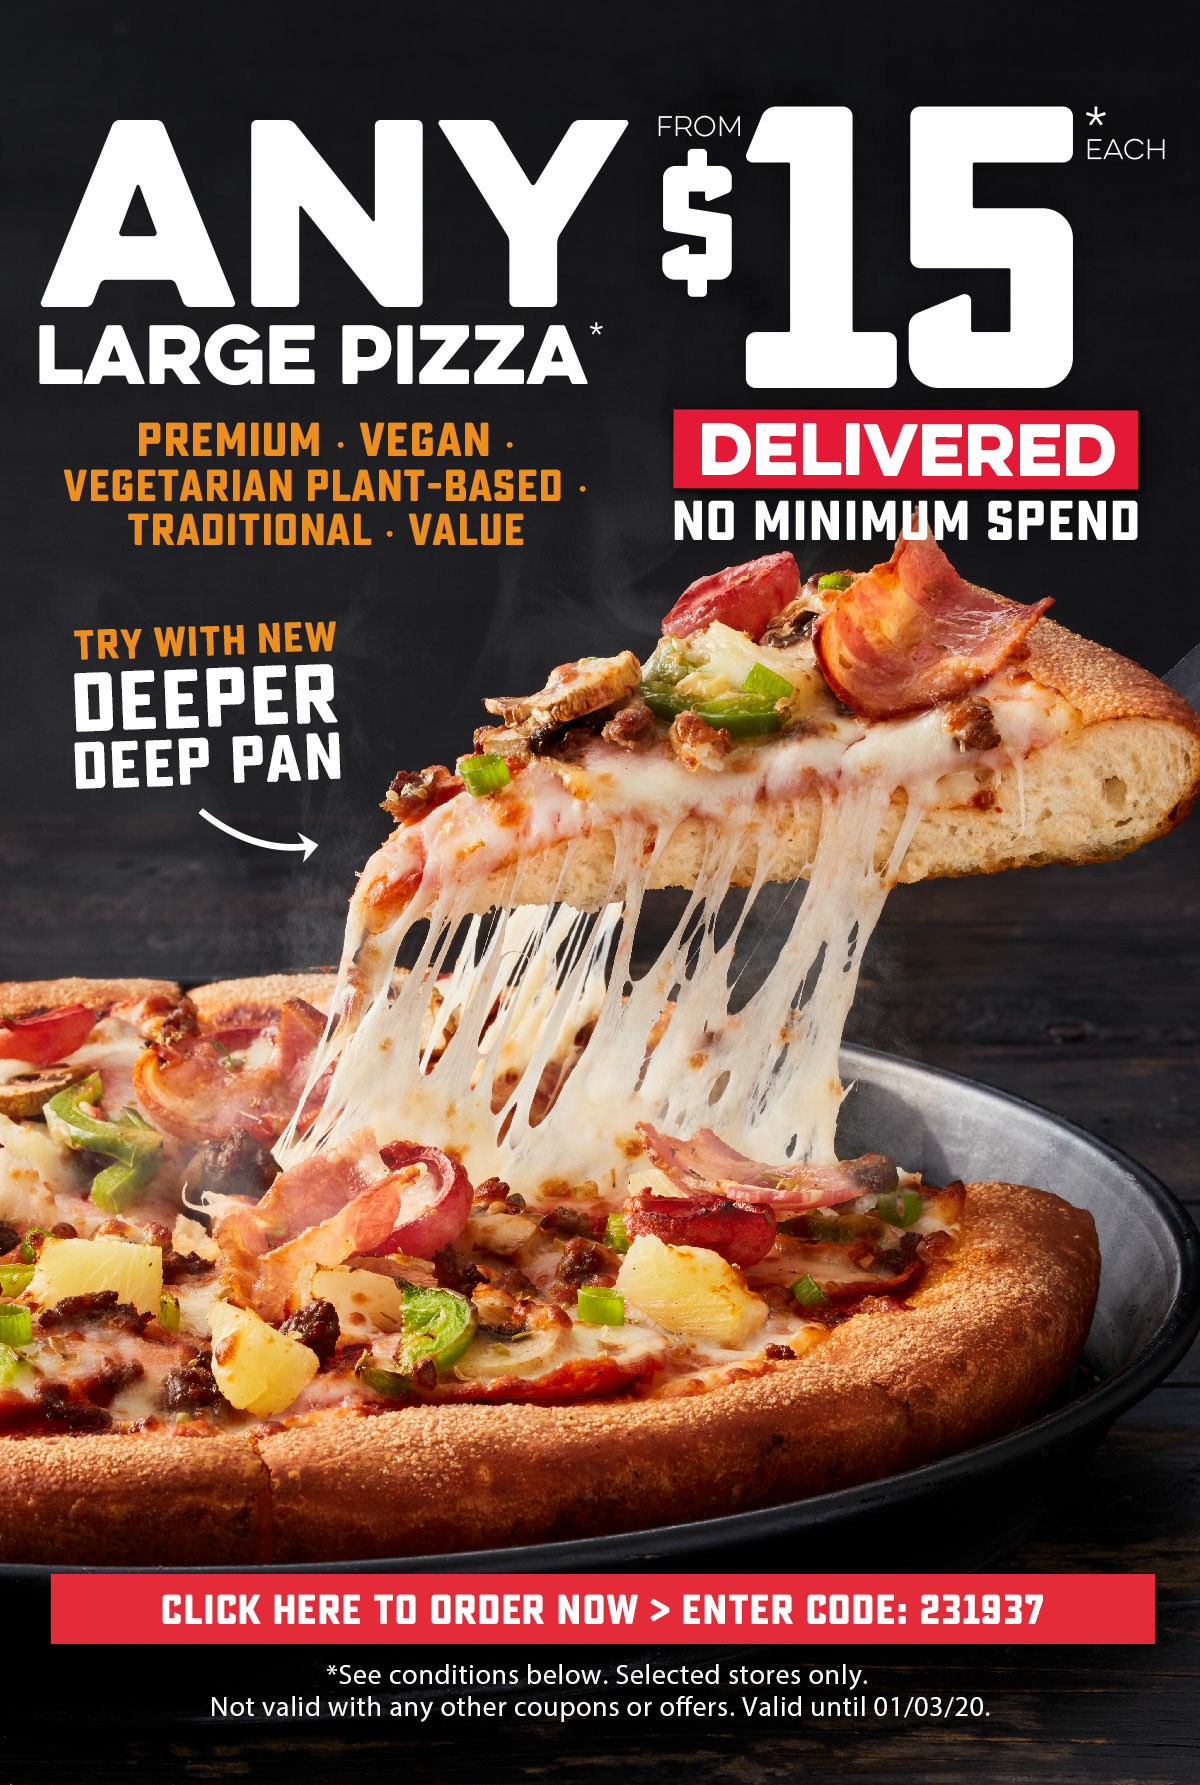 ANY Large Premium, Traditional, Vegan, Plant-Based Vegetarian or Value Pizza from $15.00* each Delivered - NO MINIMUM SPEND